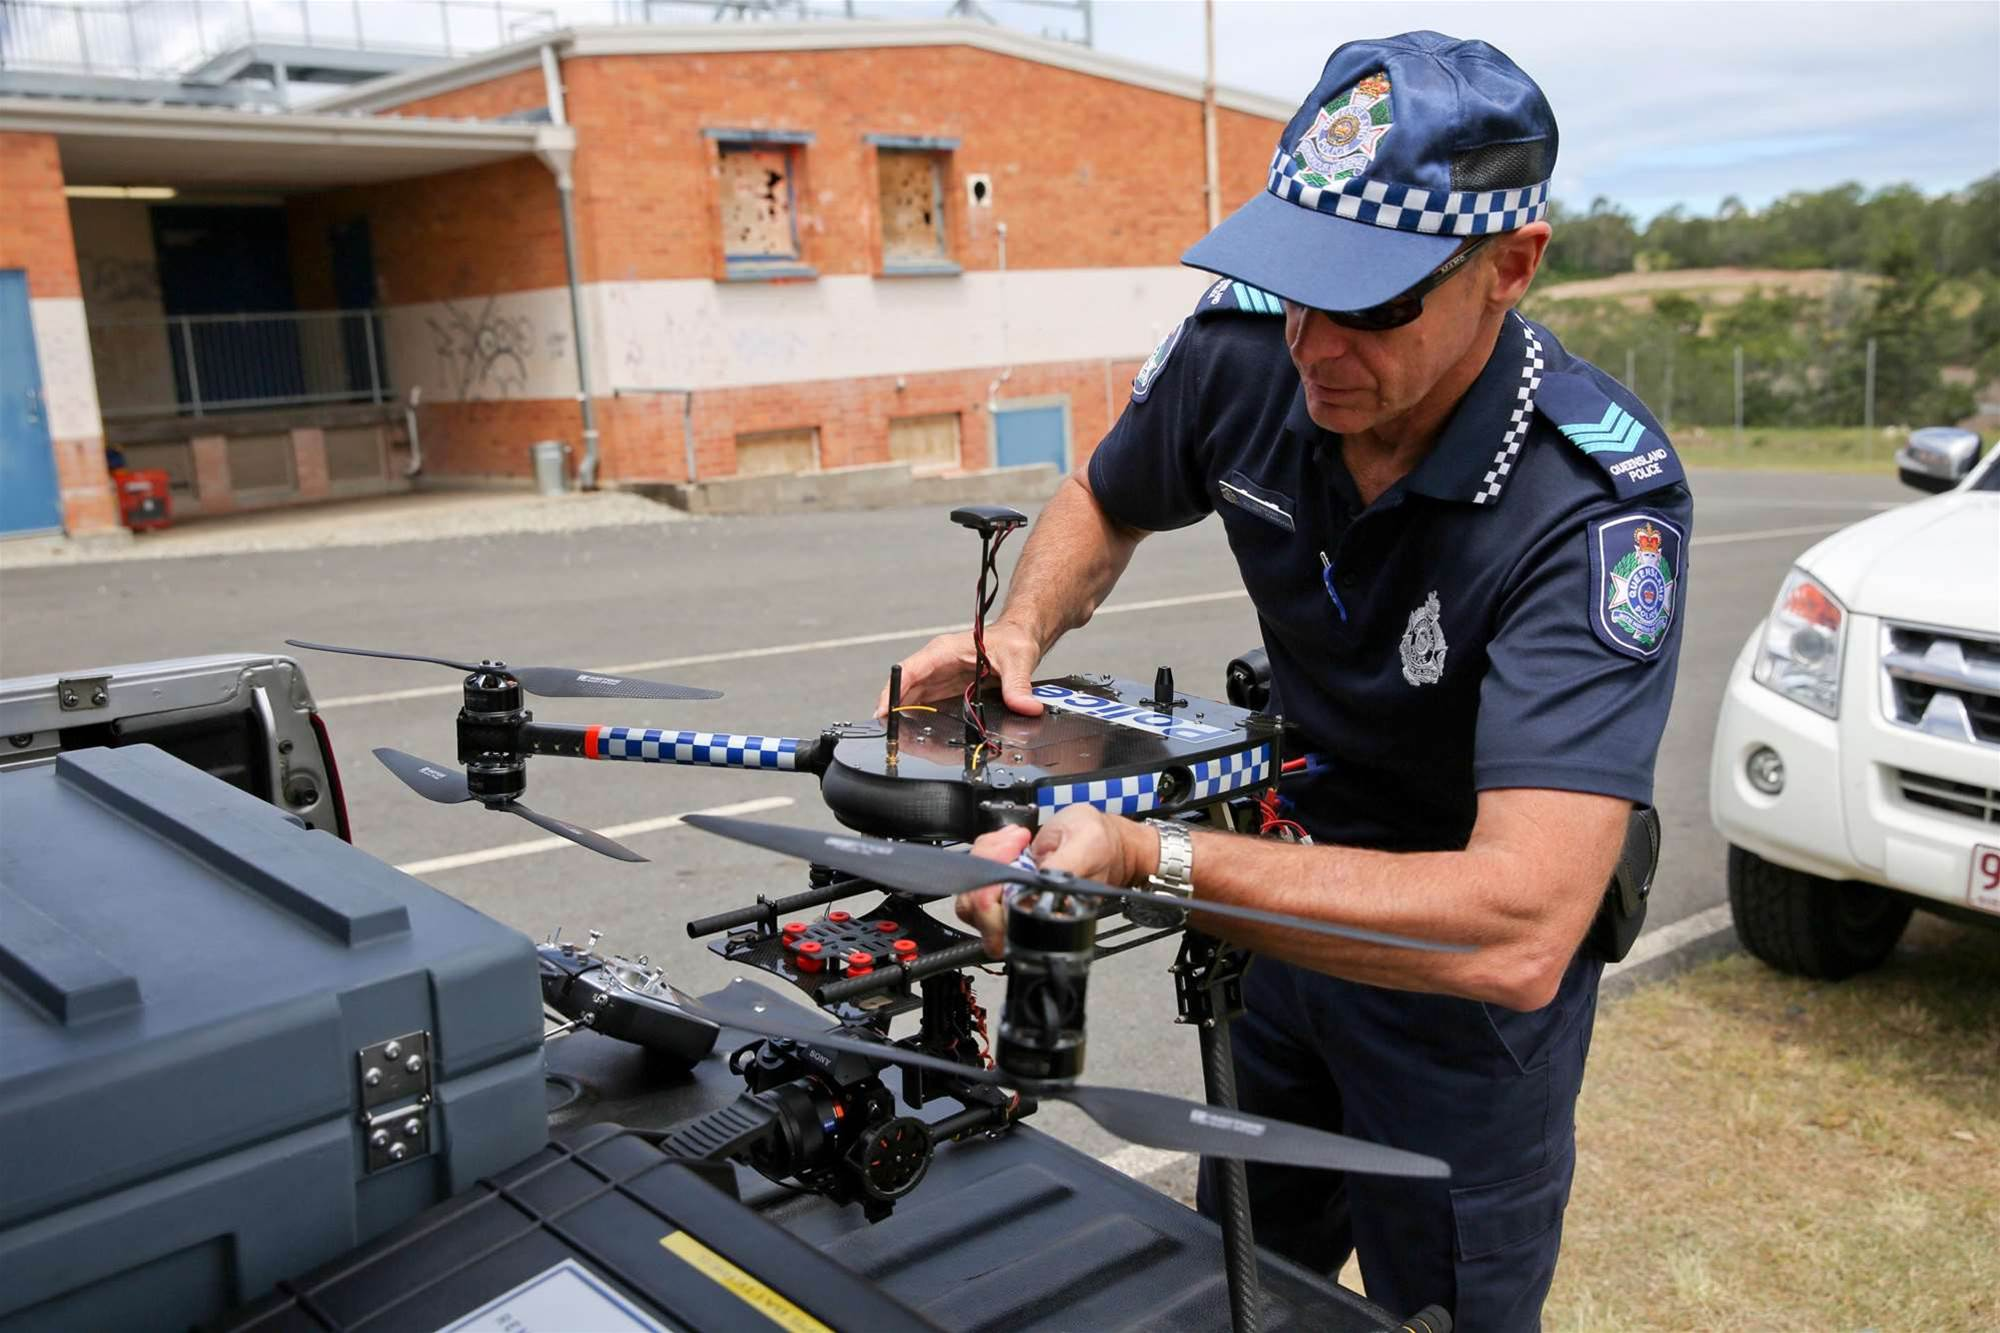 Photos: Qld Police uses drones for forensic investigations